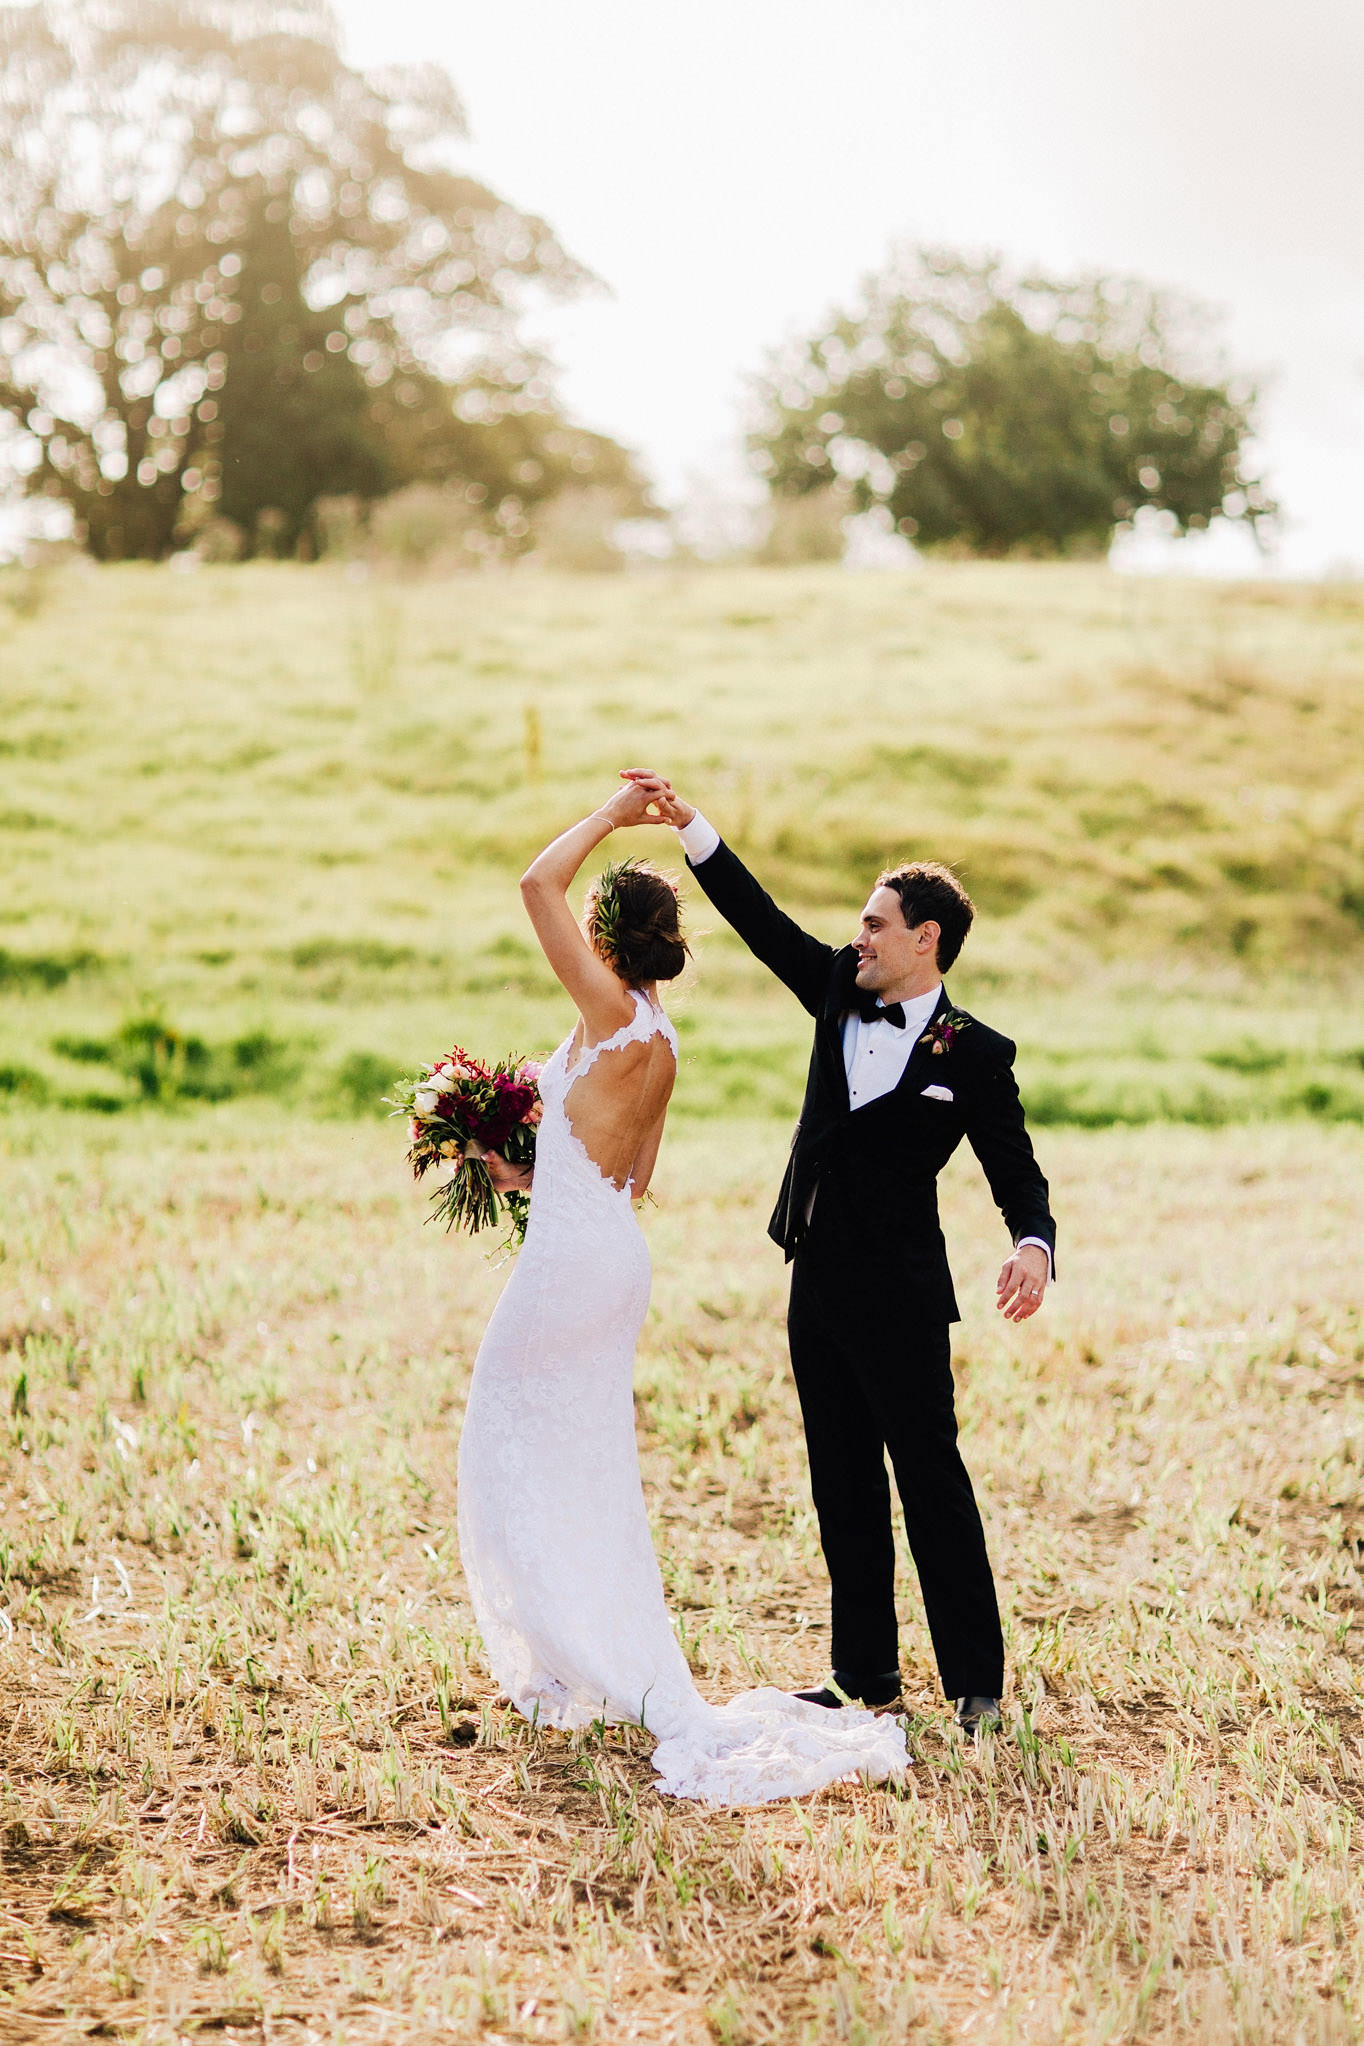 TocalHomestead_WeddingPhotography_LaurenAnnePhotography-1118.jpg